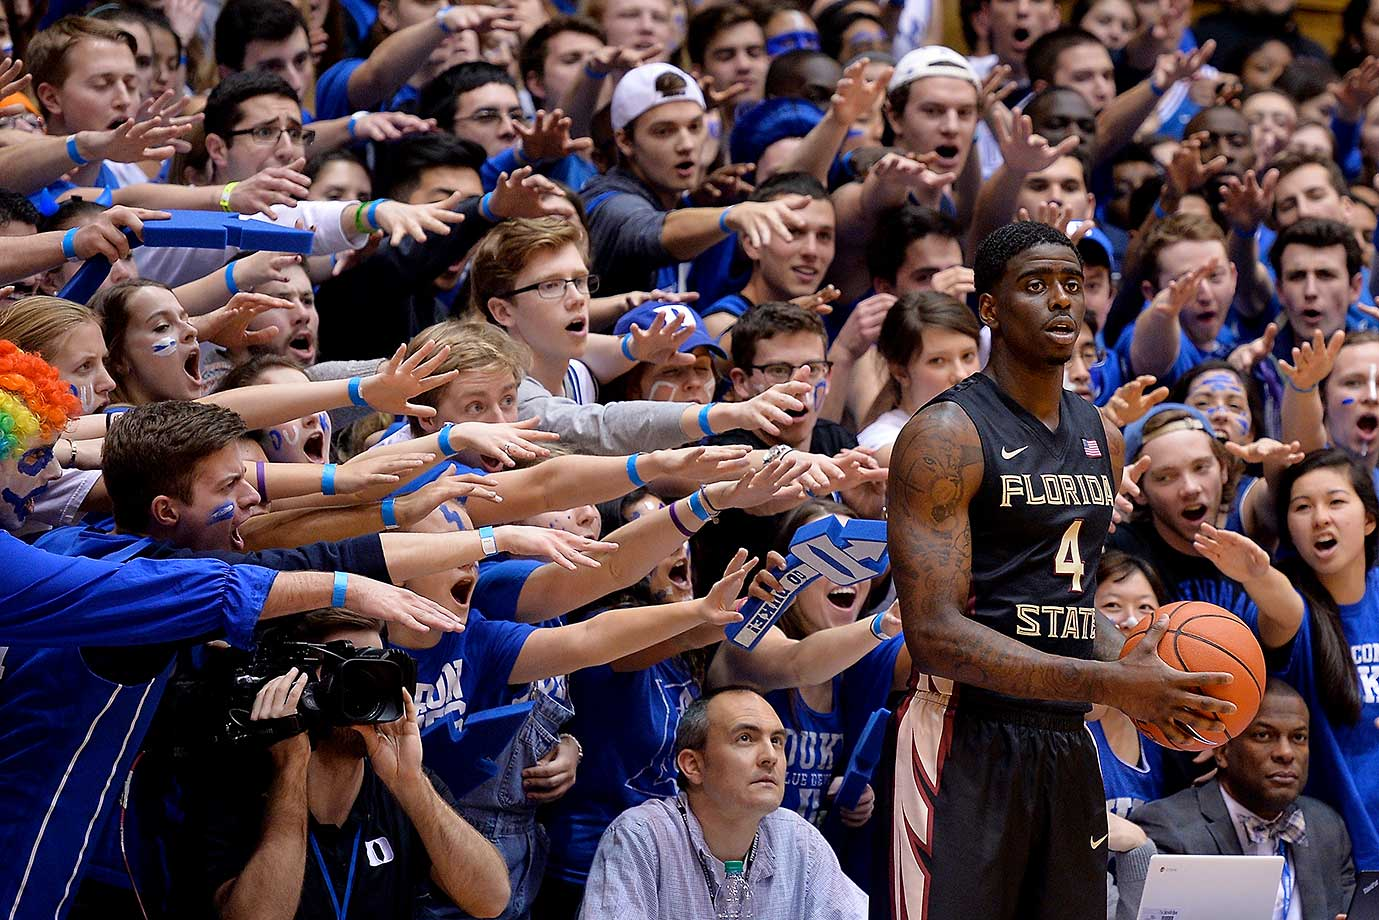 The Cameron Crazies taunt Dwayne Bacon of Florida State at Cameron Indoor Stadium.